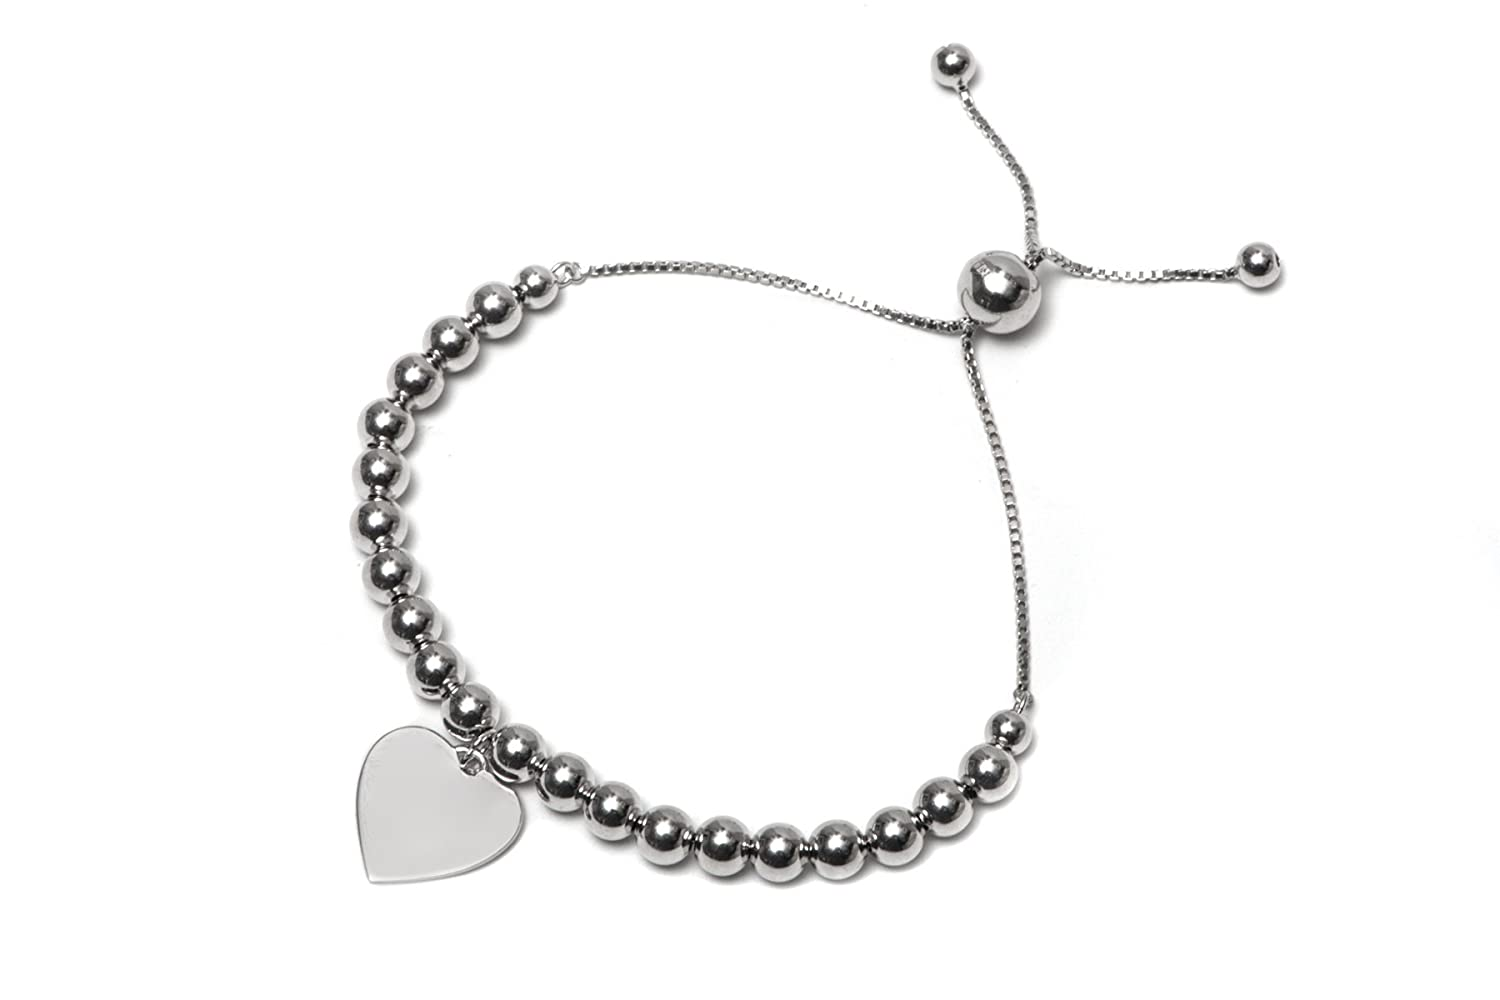 .925 Sterling Silver High Polish Ball with Dangling Heart Bolo Adjustable Bracelet